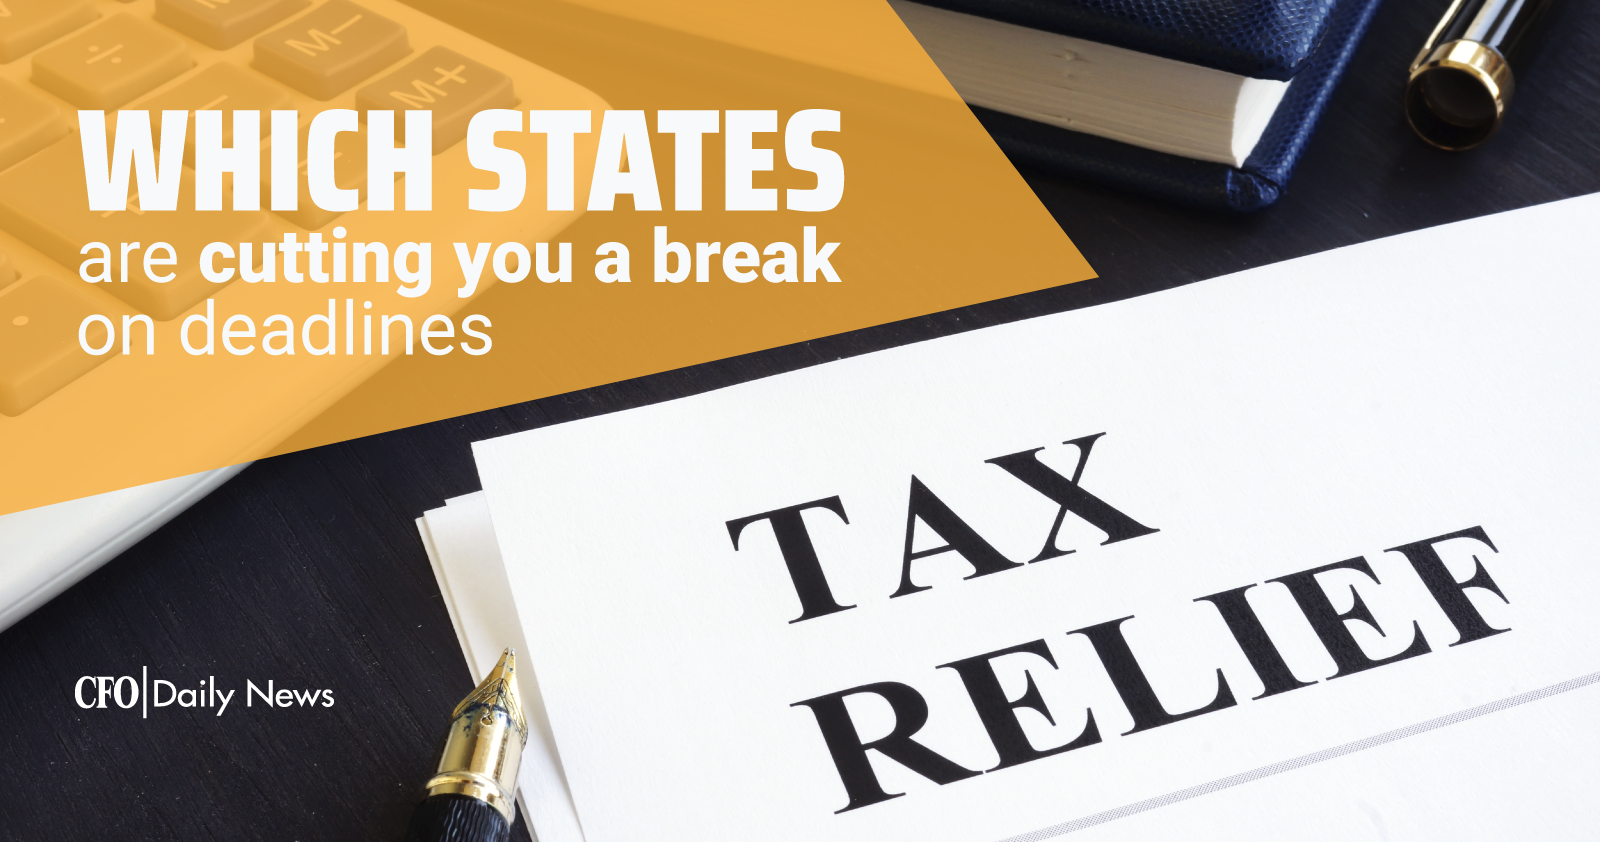 Which states are cutting tax break deadlines